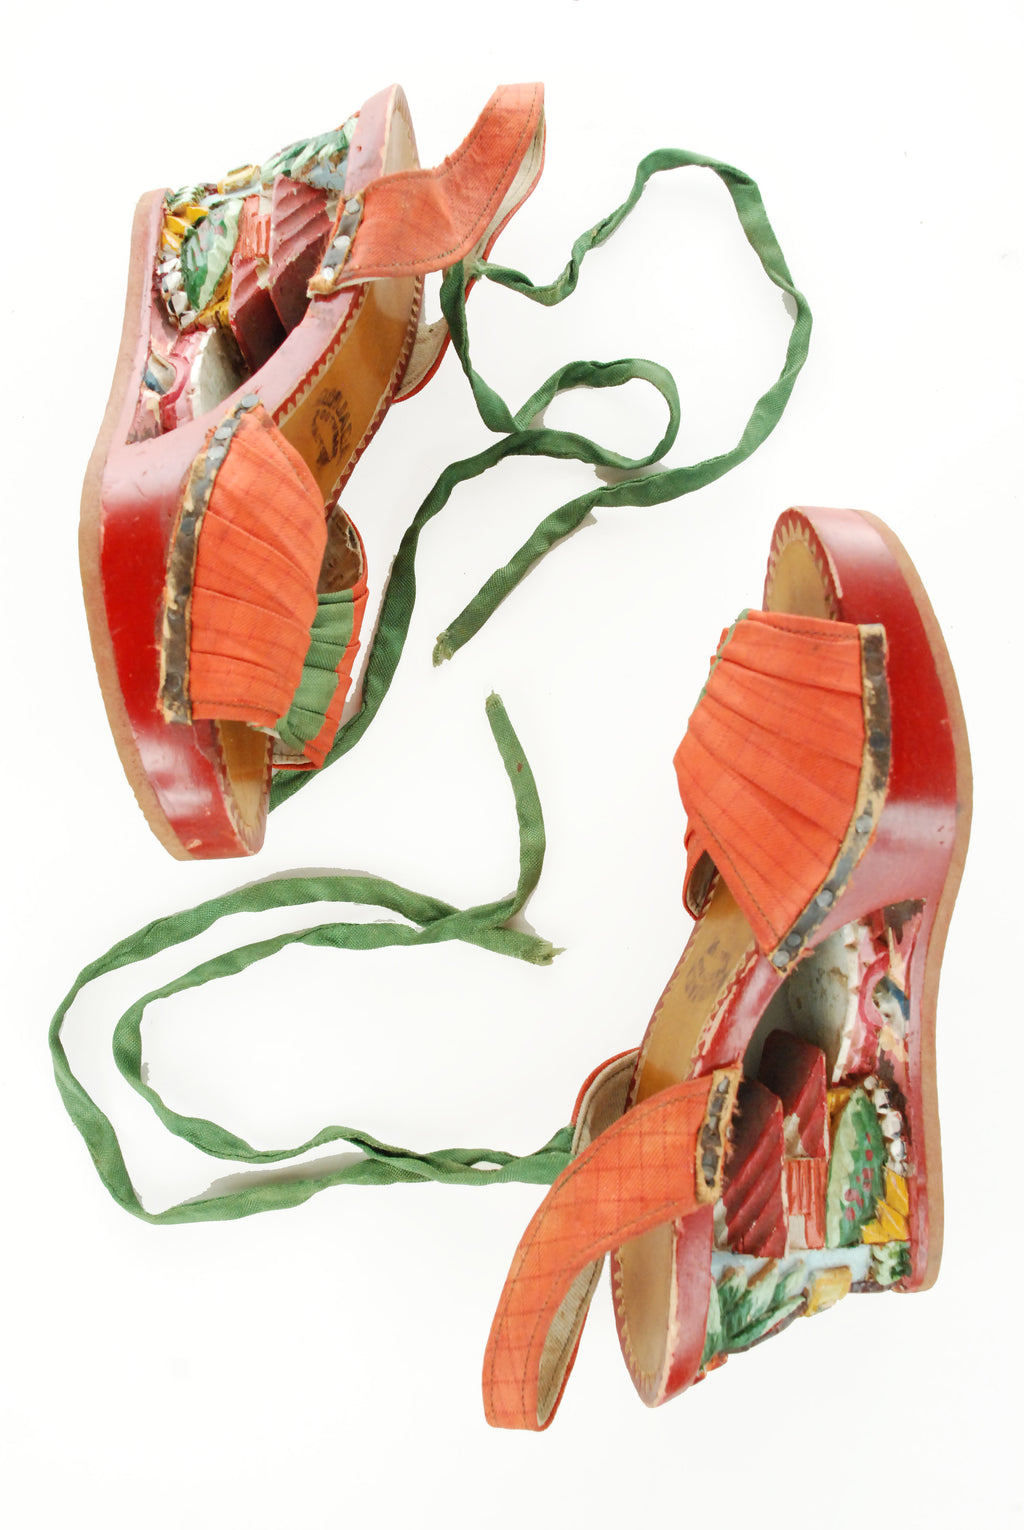 Fantastic 1940s or 1950s Carved and Painted Tourist Wedges with Cotton Uppers and Ankle Ties